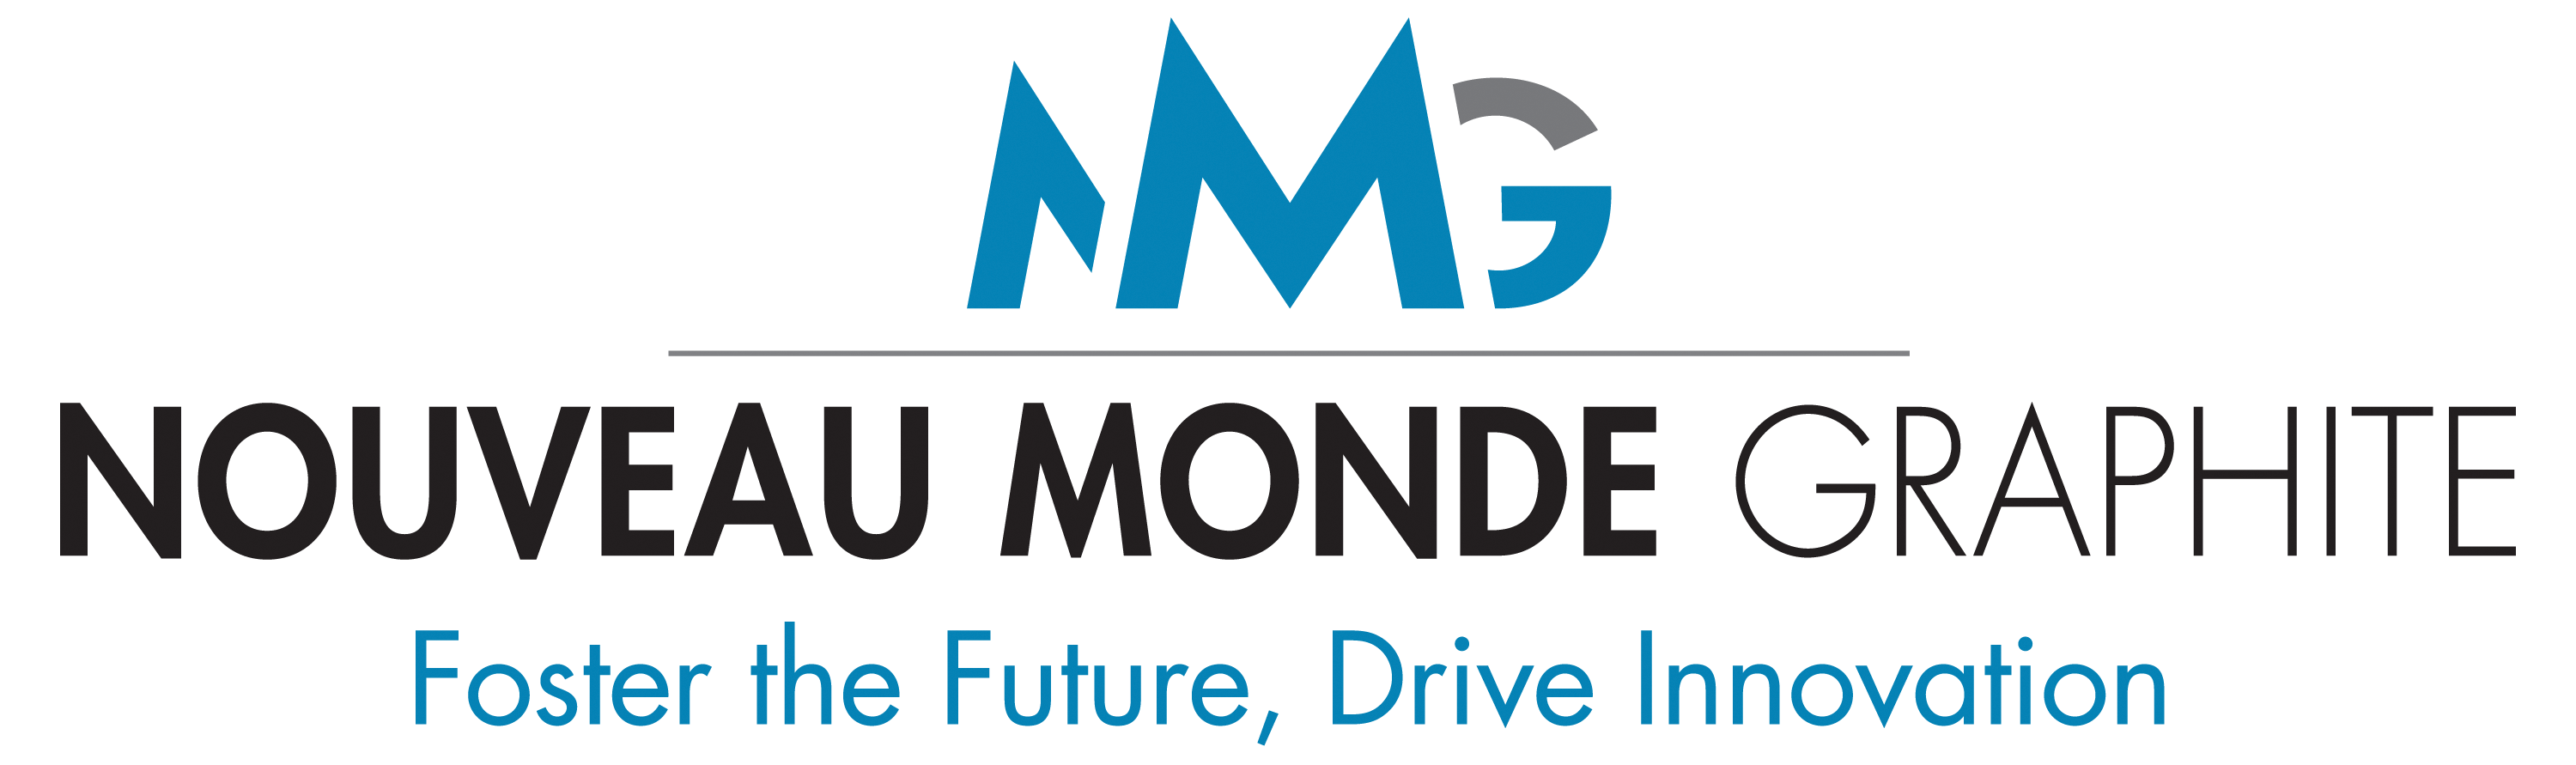 Nouveau Monde and Forge Nano Sign a Collaboration Agreement for Advanced Coatings for Li-Ion Battery Anode Material